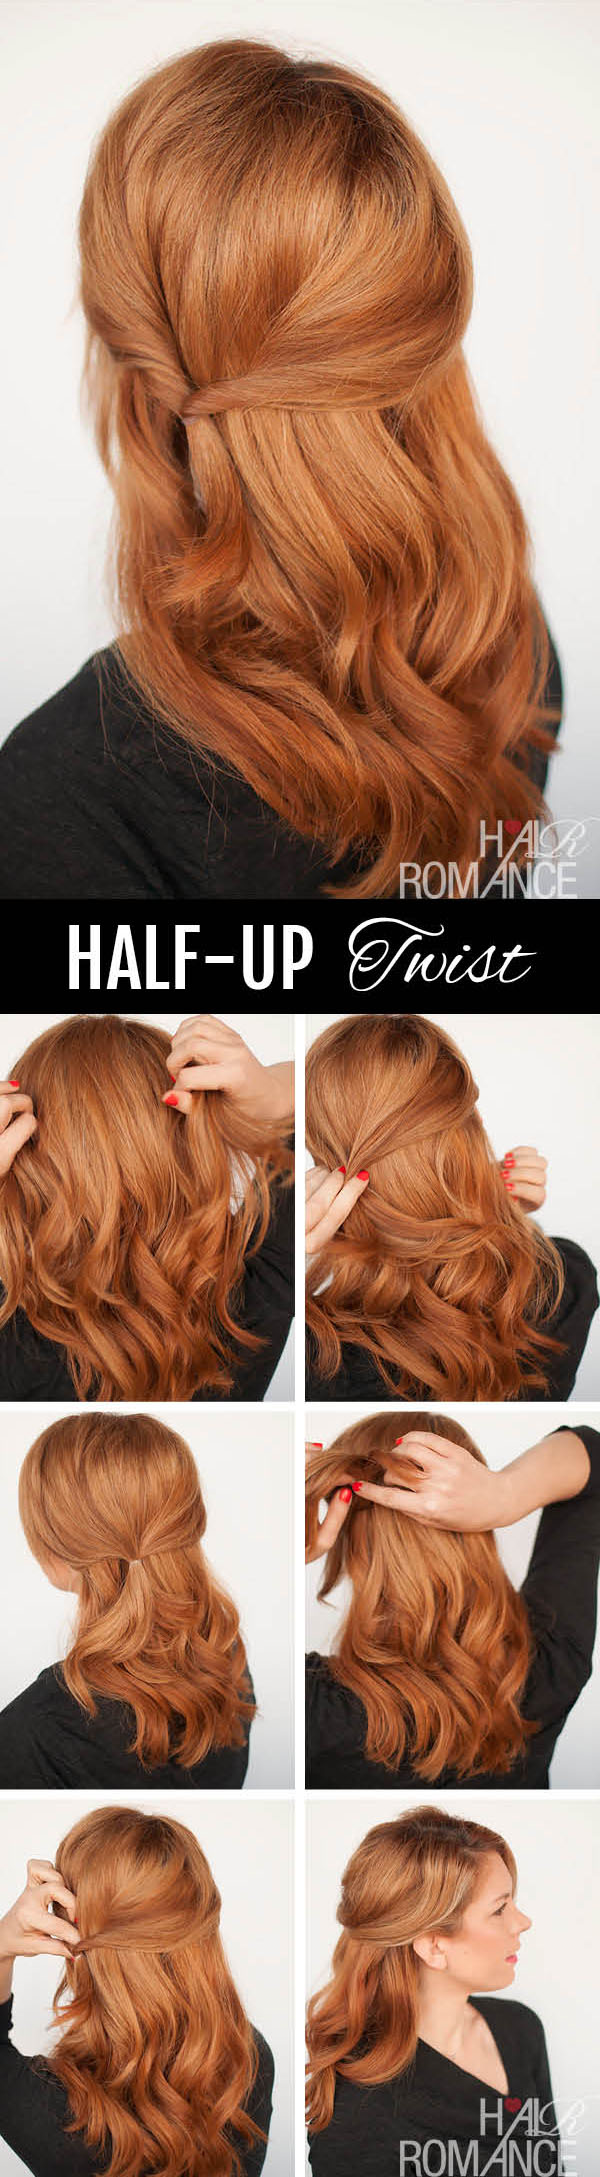 Hair Romance - half up twist hairstyle tutorial